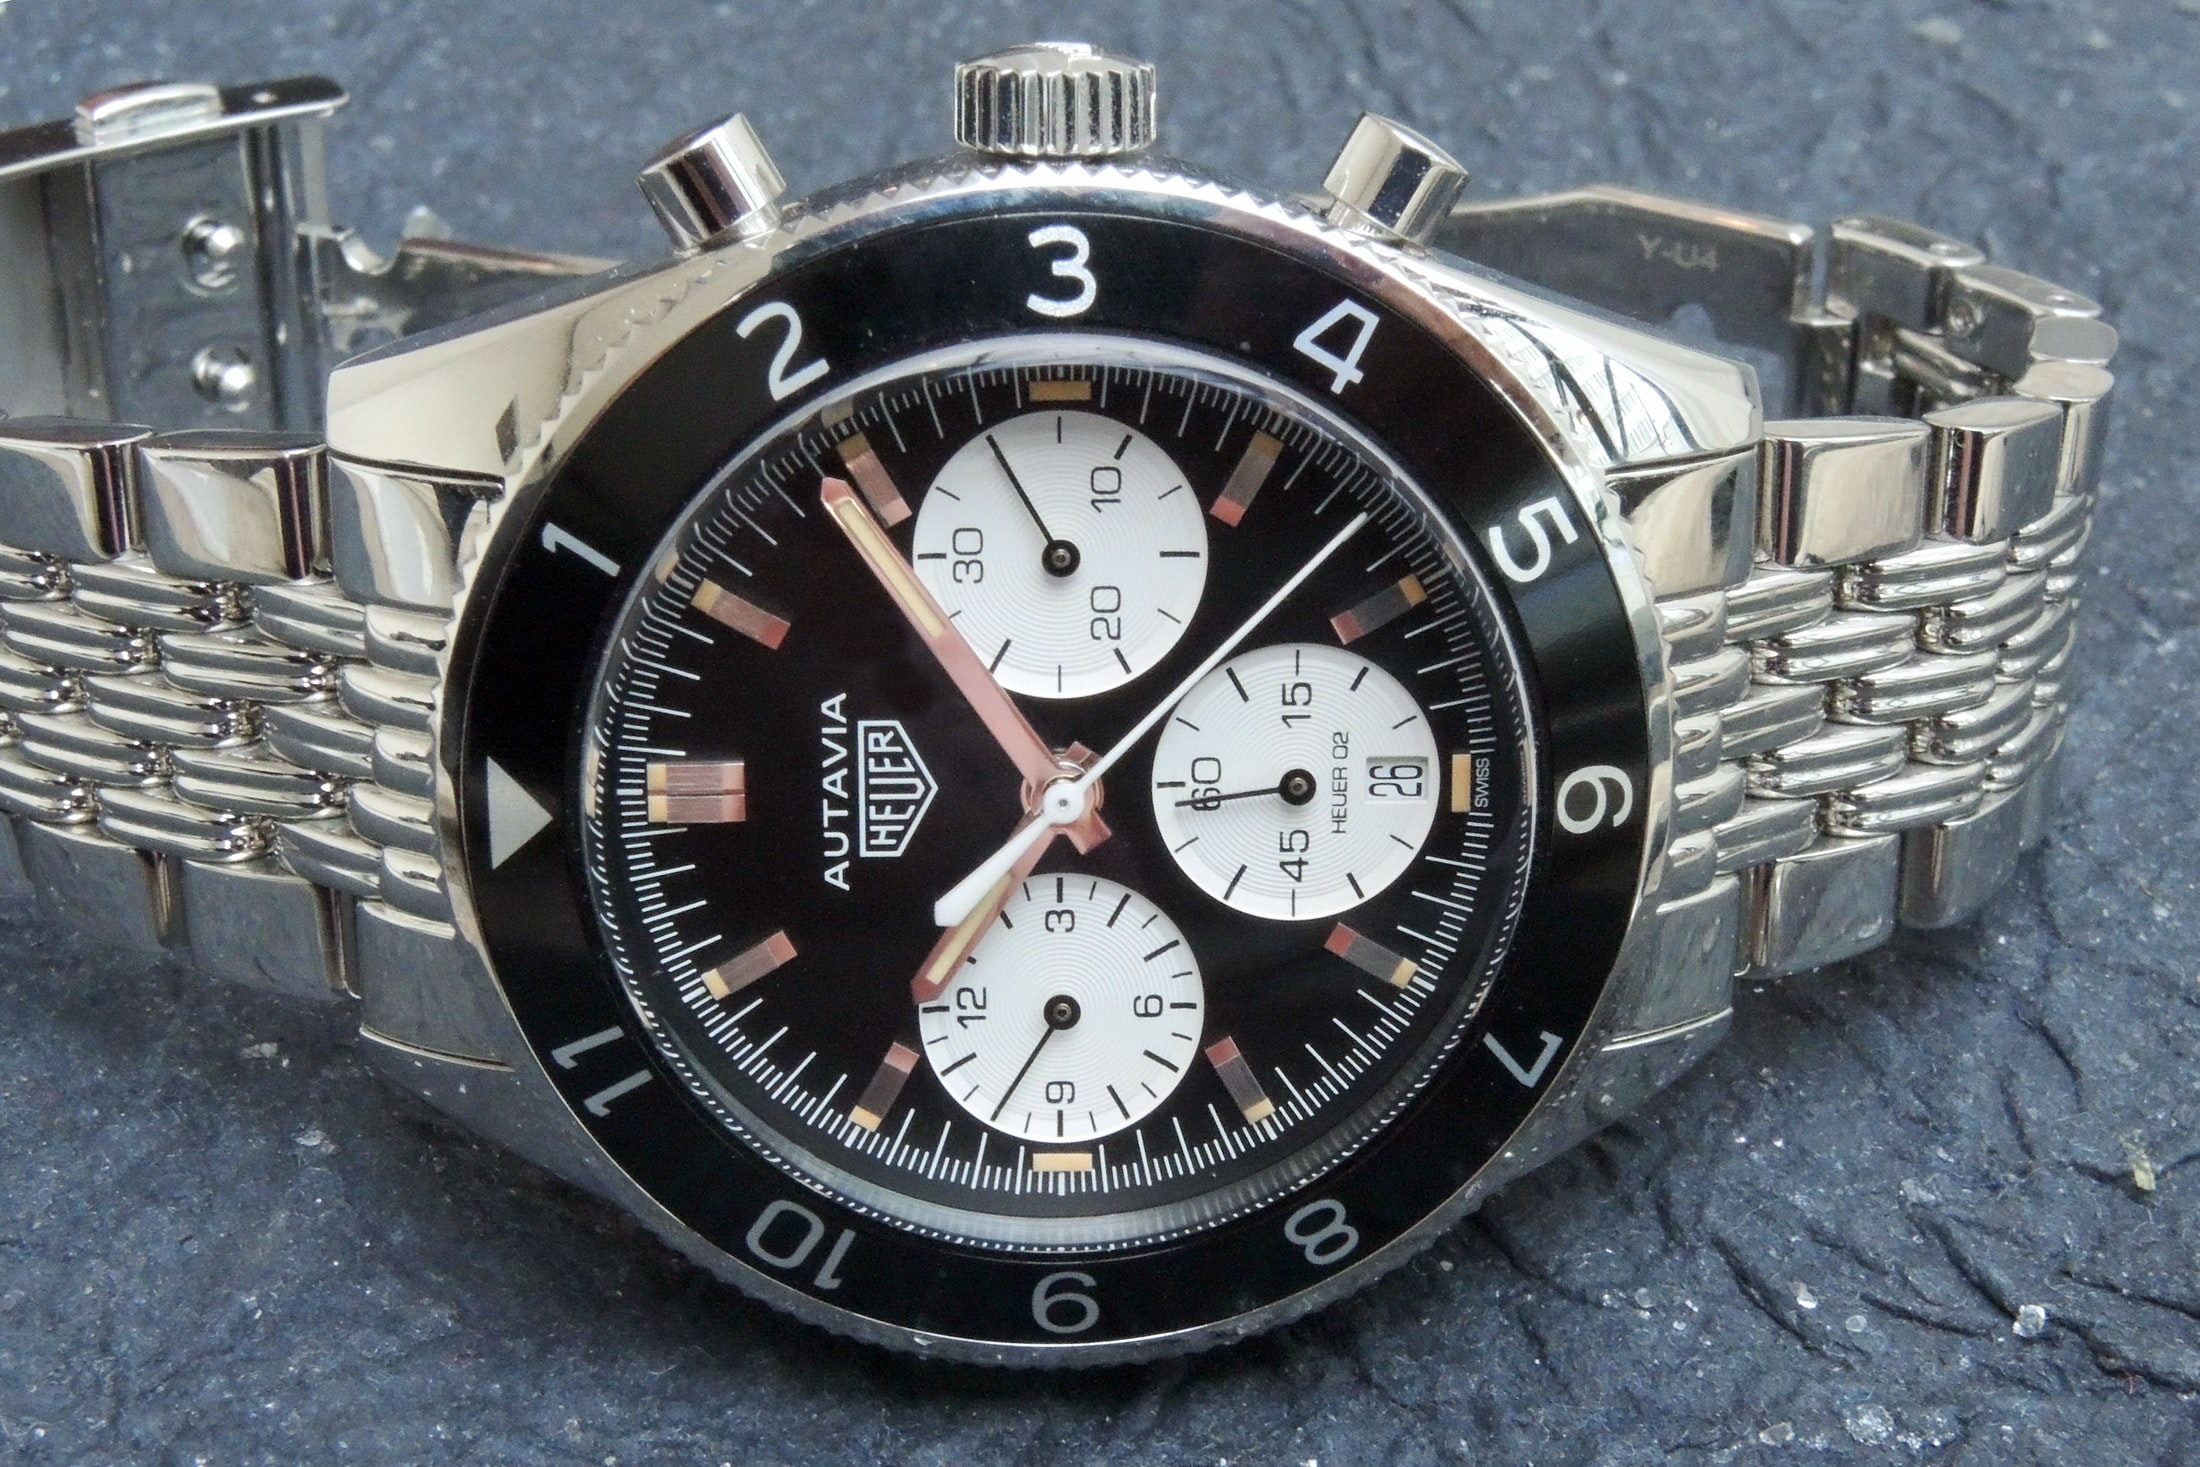 2017 heuer autavia Interview: Heuer Expert Jeff Stein's Take On The 2017 TAG Heuer Autavia Interview: Heuer Expert Jeff Stein's Take On The 2017 TAG Heuer Autavia 12Aut2017w2200